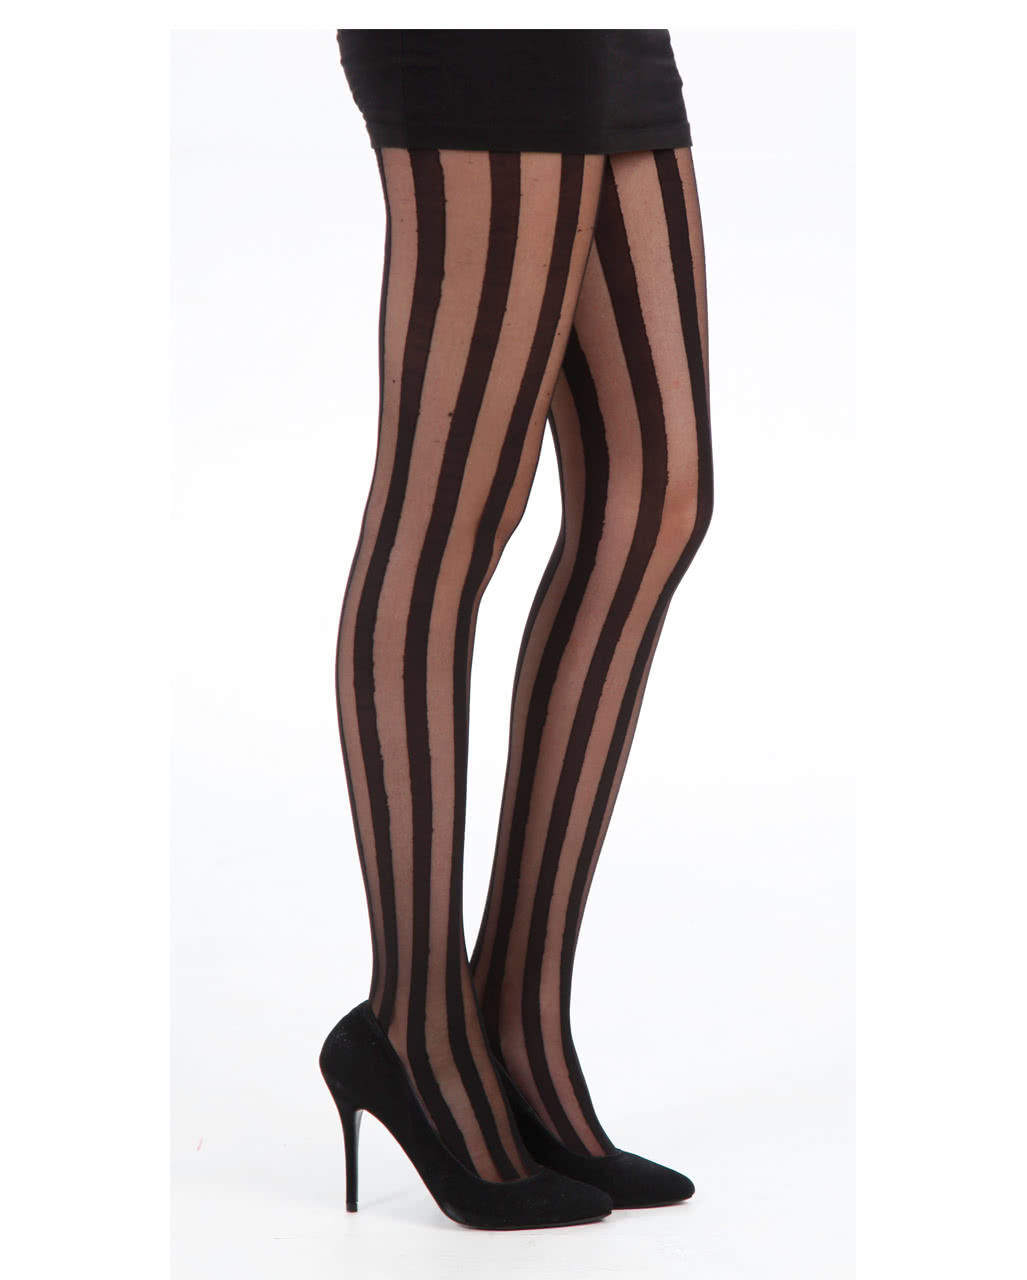 sheer bar pantyhose with stripes fetish outfits horror. Black Bedroom Furniture Sets. Home Design Ideas